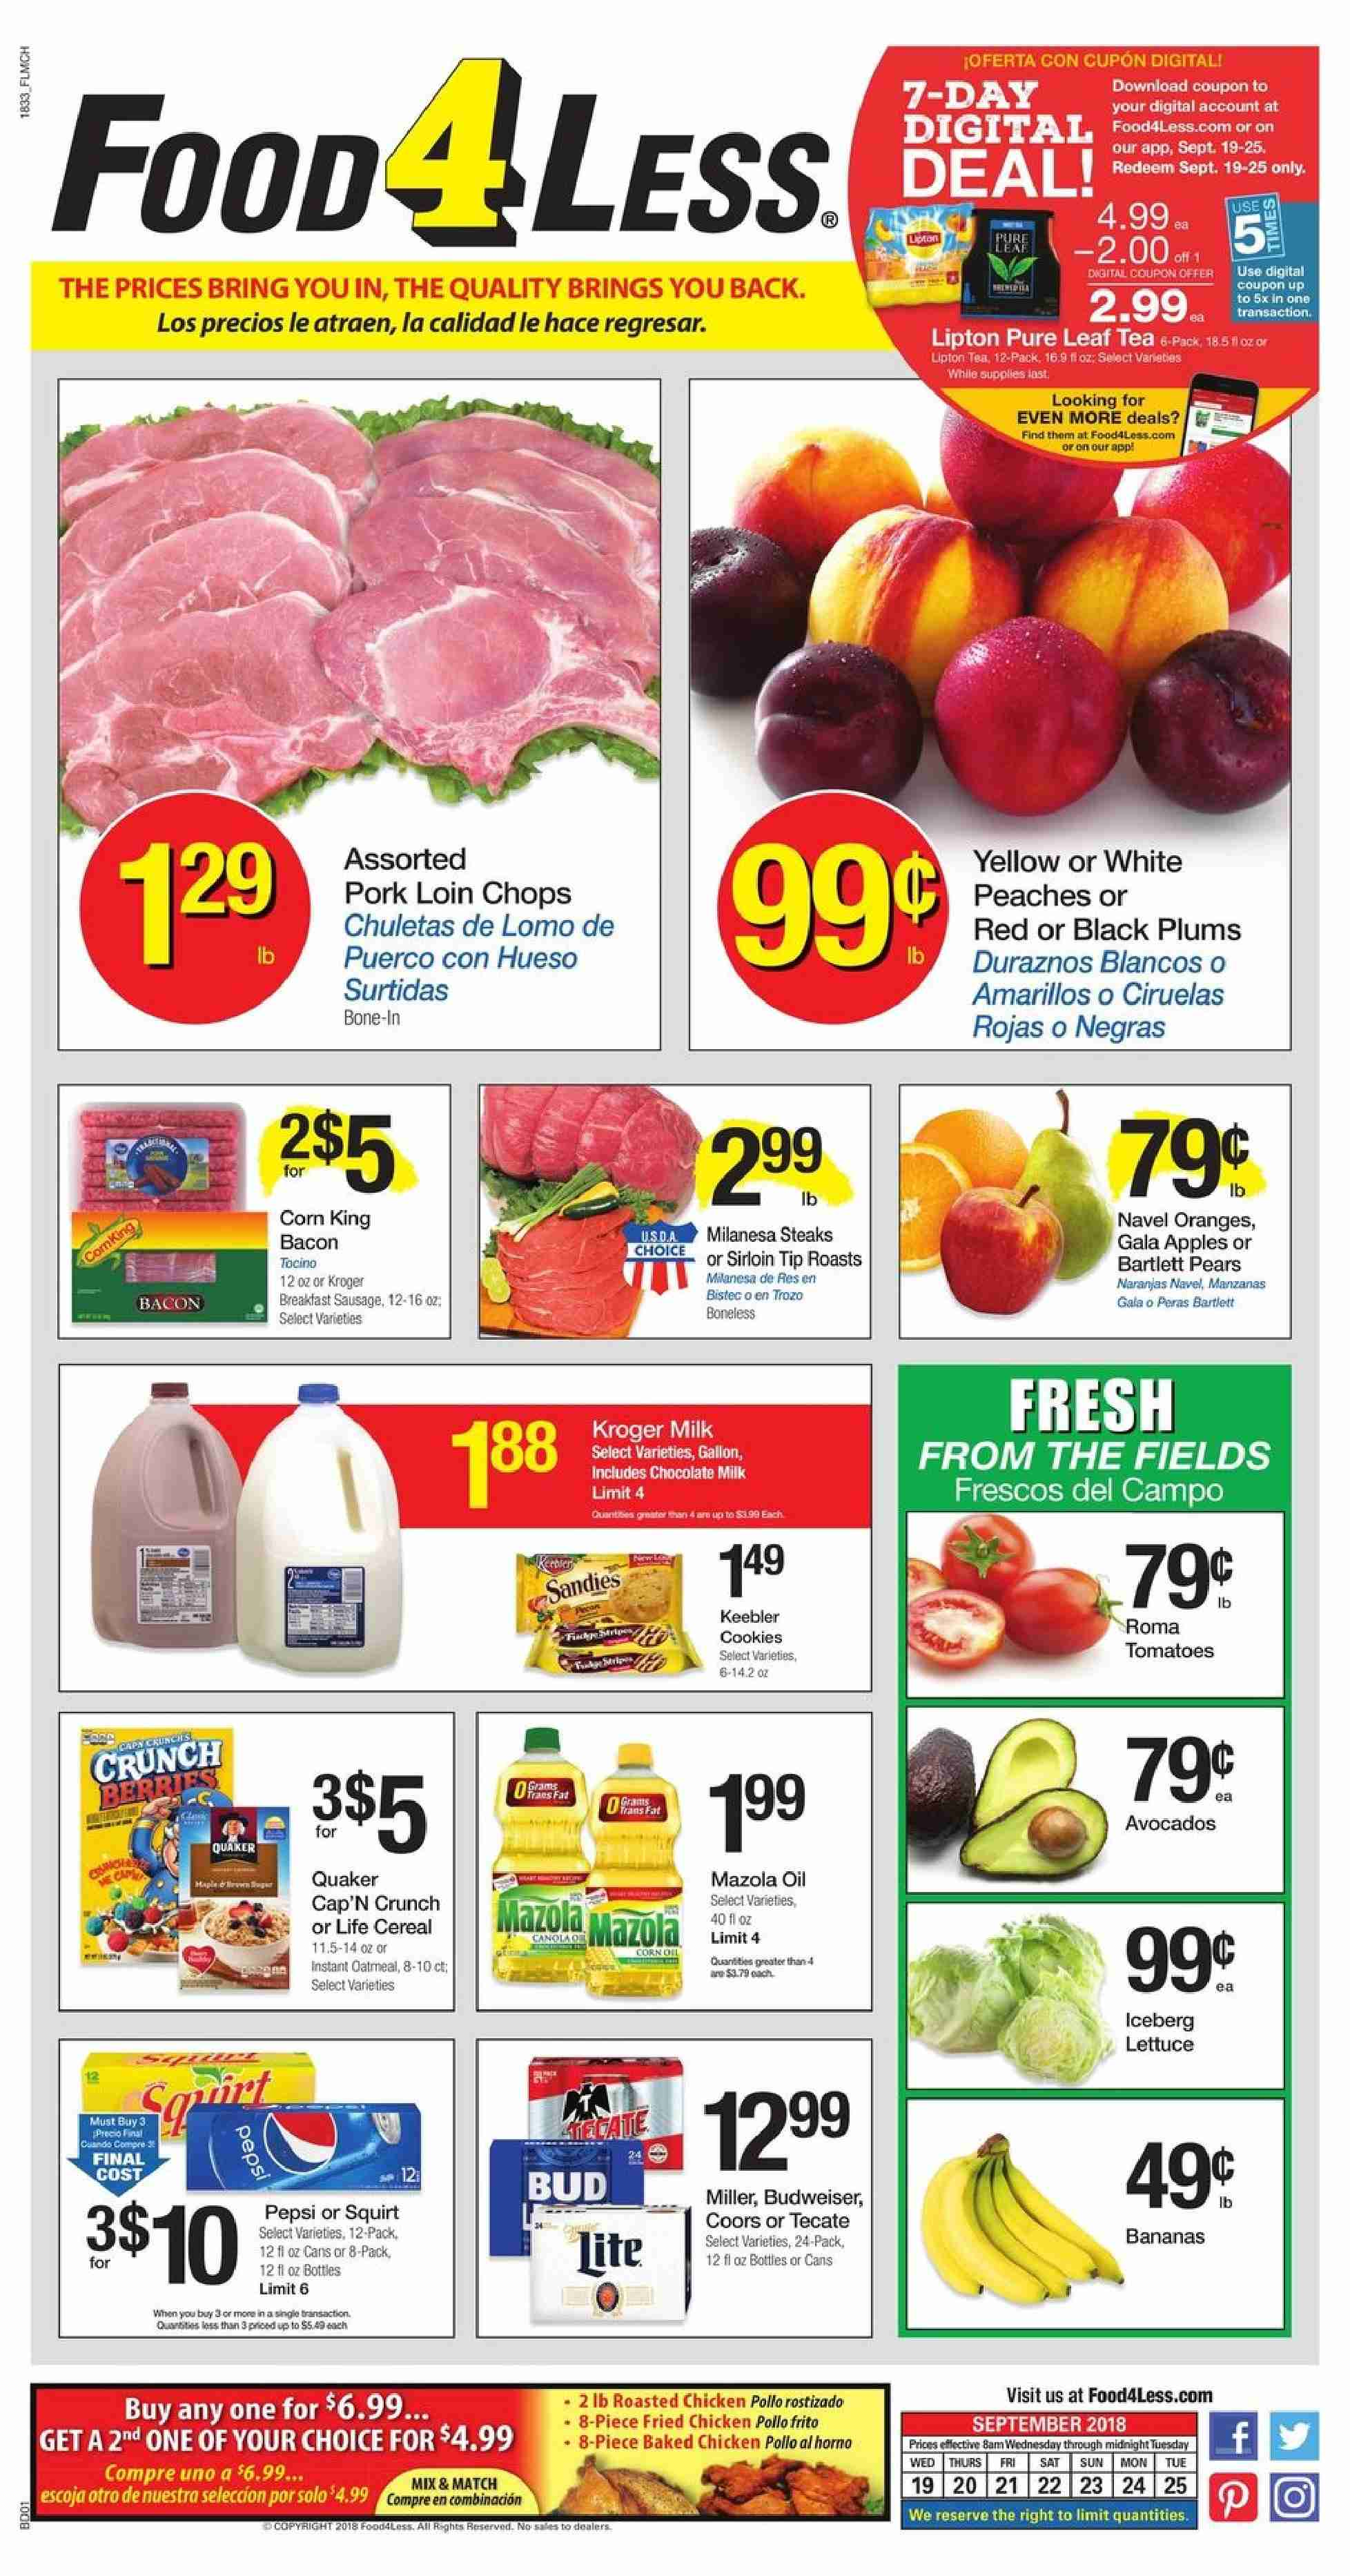 Food 4 Less Flyer - 09.19.2018 - 09.25.2018 - Sales products - Budweiser, Coors, corn, tomatoes, lettuce, avocado, bananas, Bartlett pears, Gala, plums, pears, orange, peache, fried chicken, bacon, sausage, milk, chocolate milk, chocolate, oatmeal, cereals, Pepsi, Lipton, tea, chicken, pork loin, pork meat. Page 1.